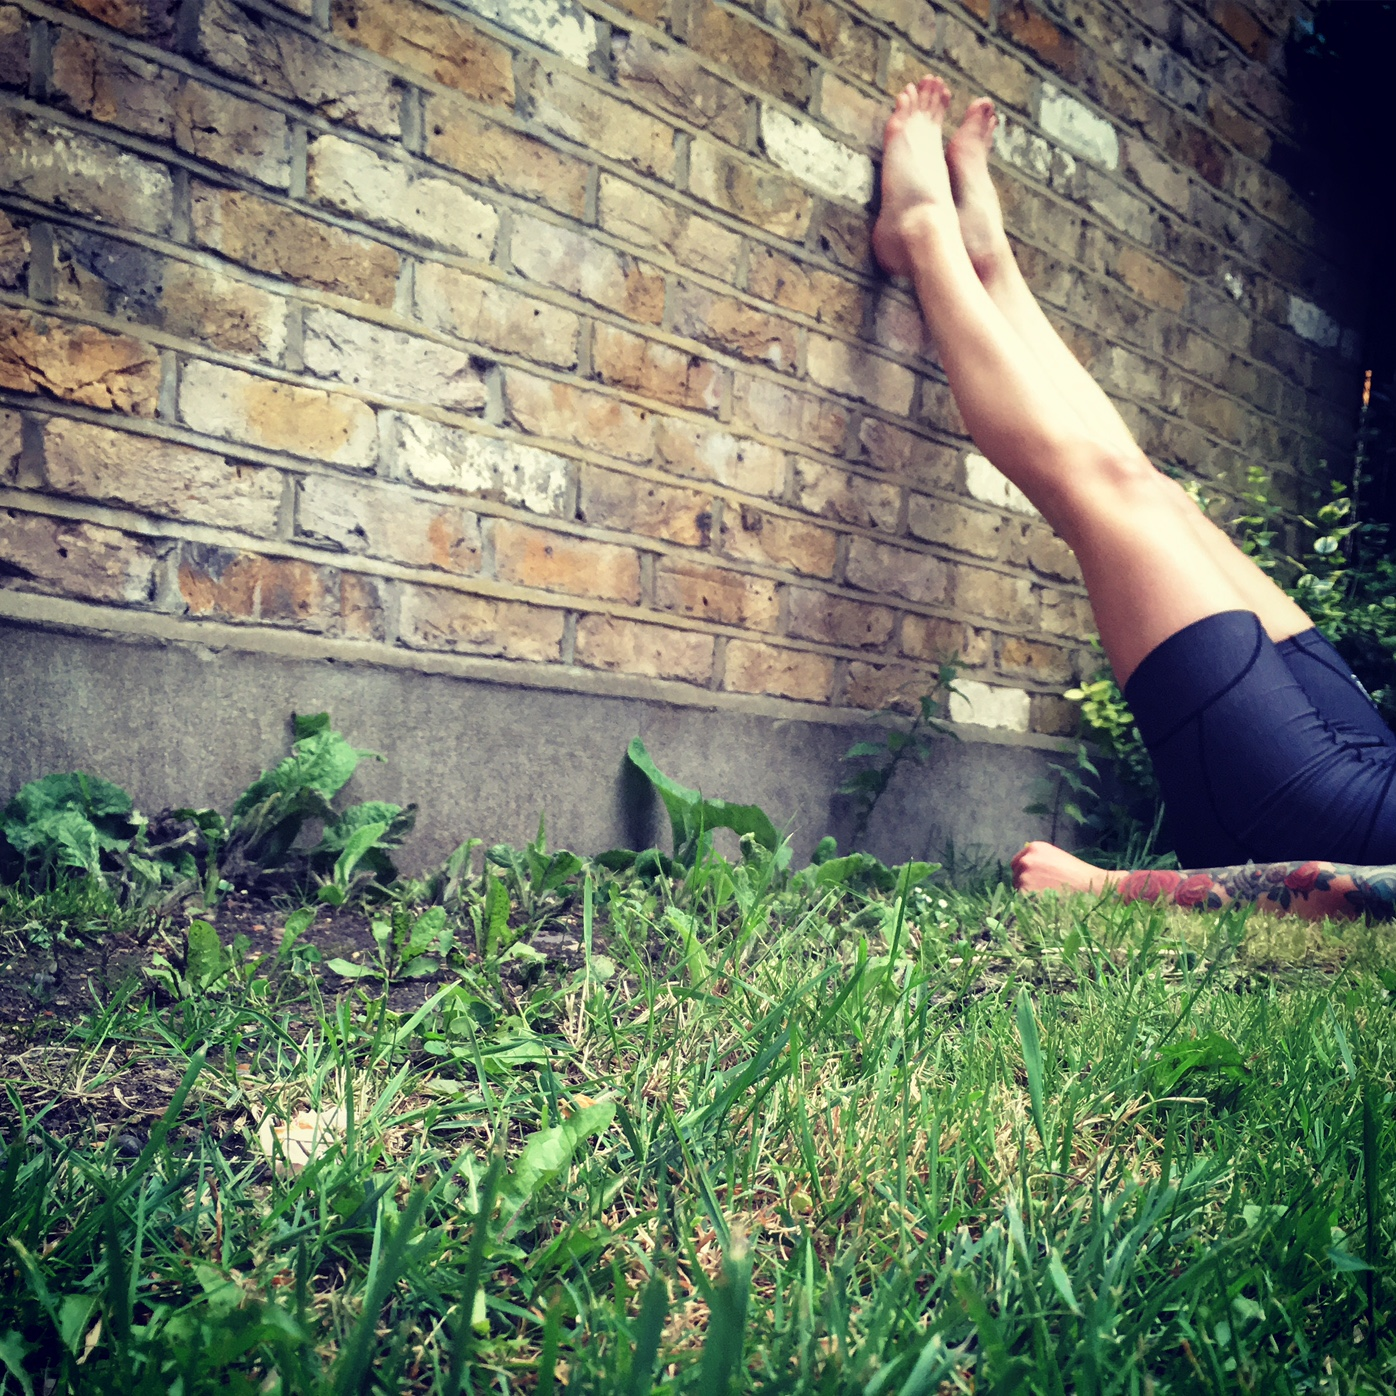 Post-cycling legs up the wall (viparita karani)